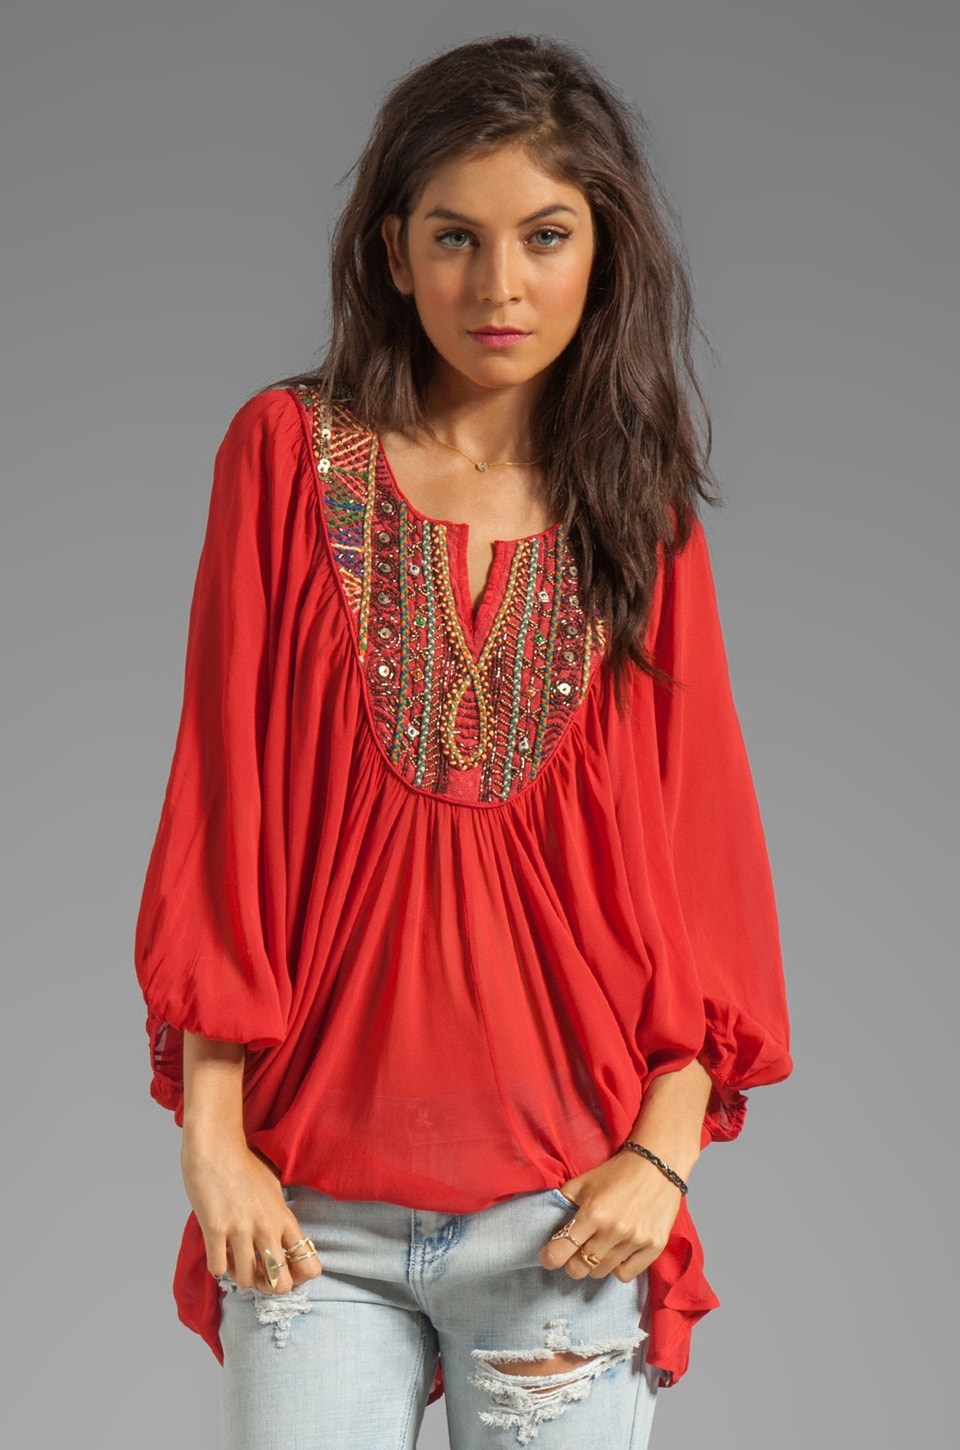 Free People Fortune Teller Top in Red Combo